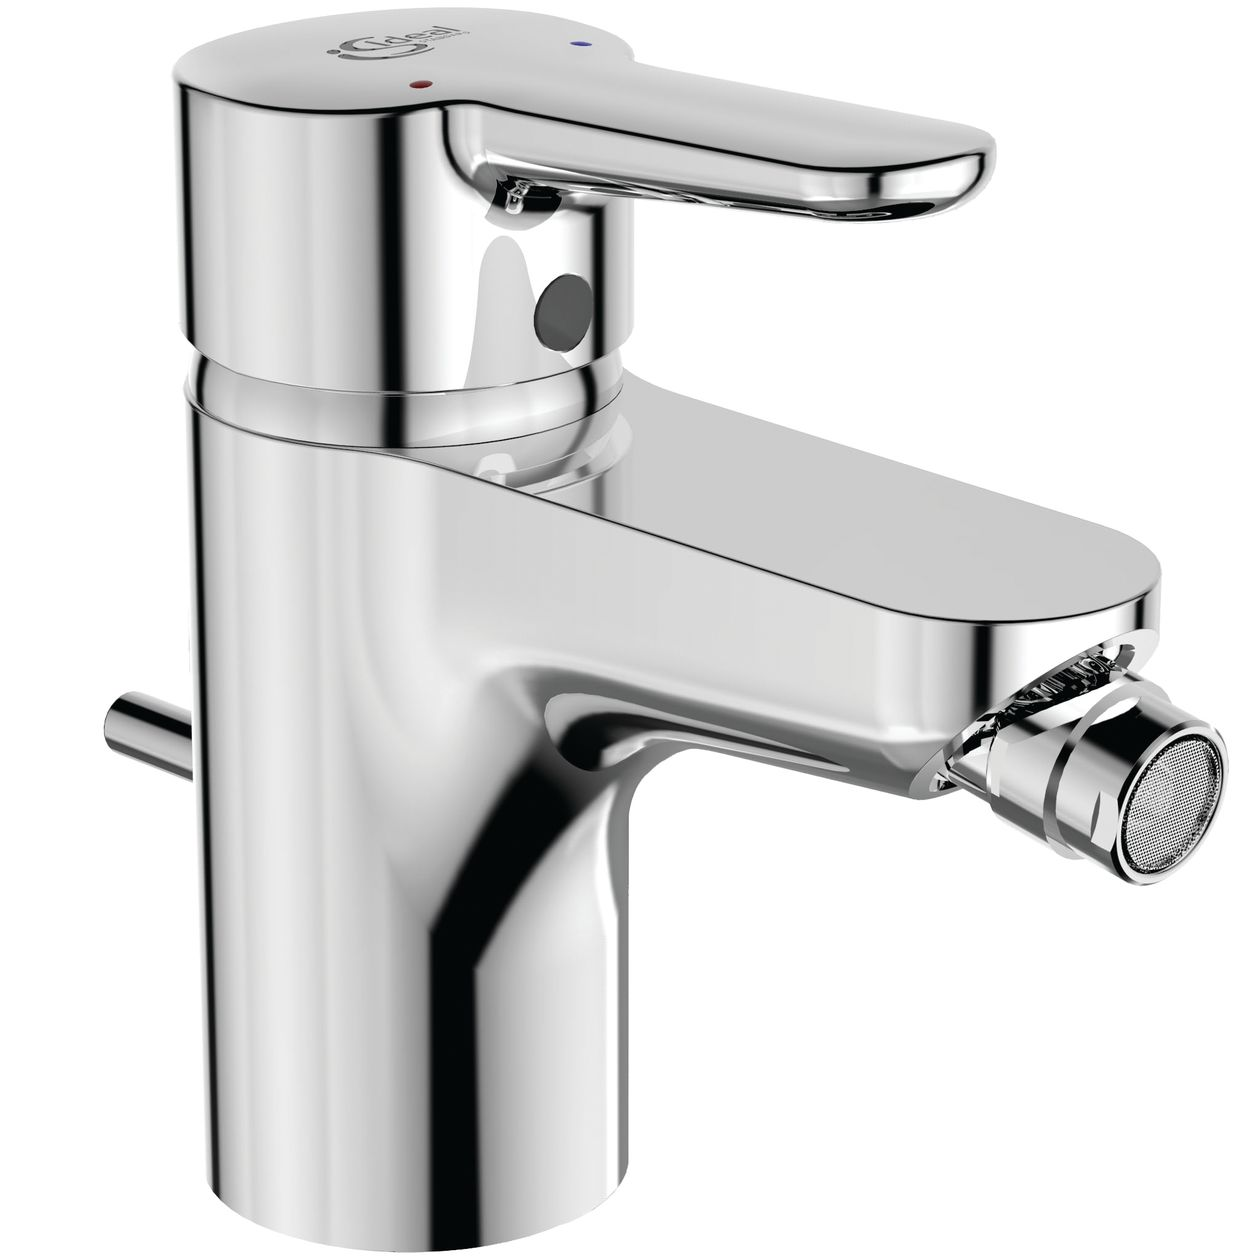 Scala Per Libreria Ikea ideal standard taps uk